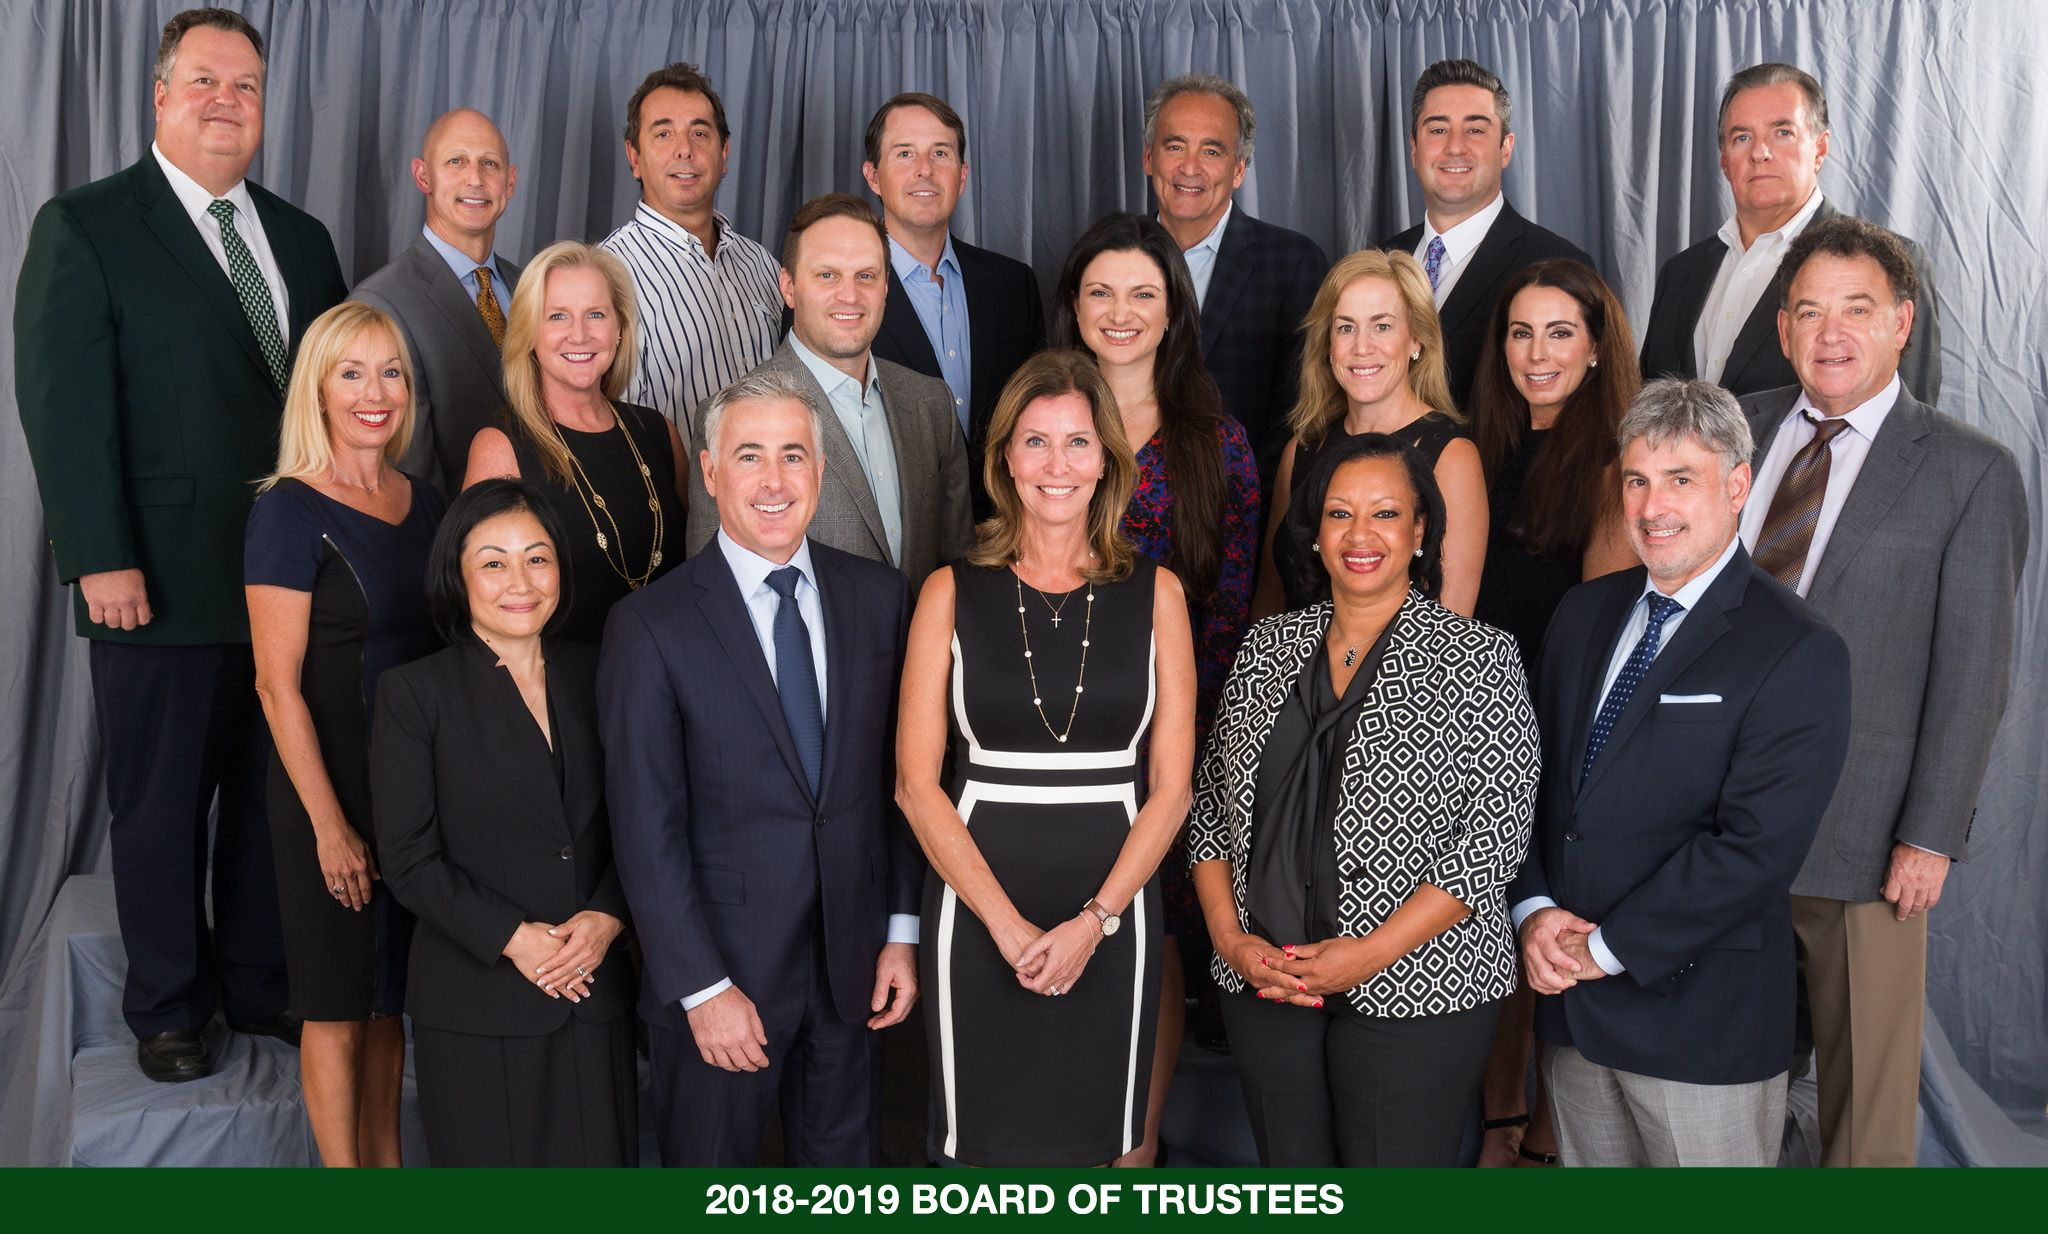 pine crest school board of trustees